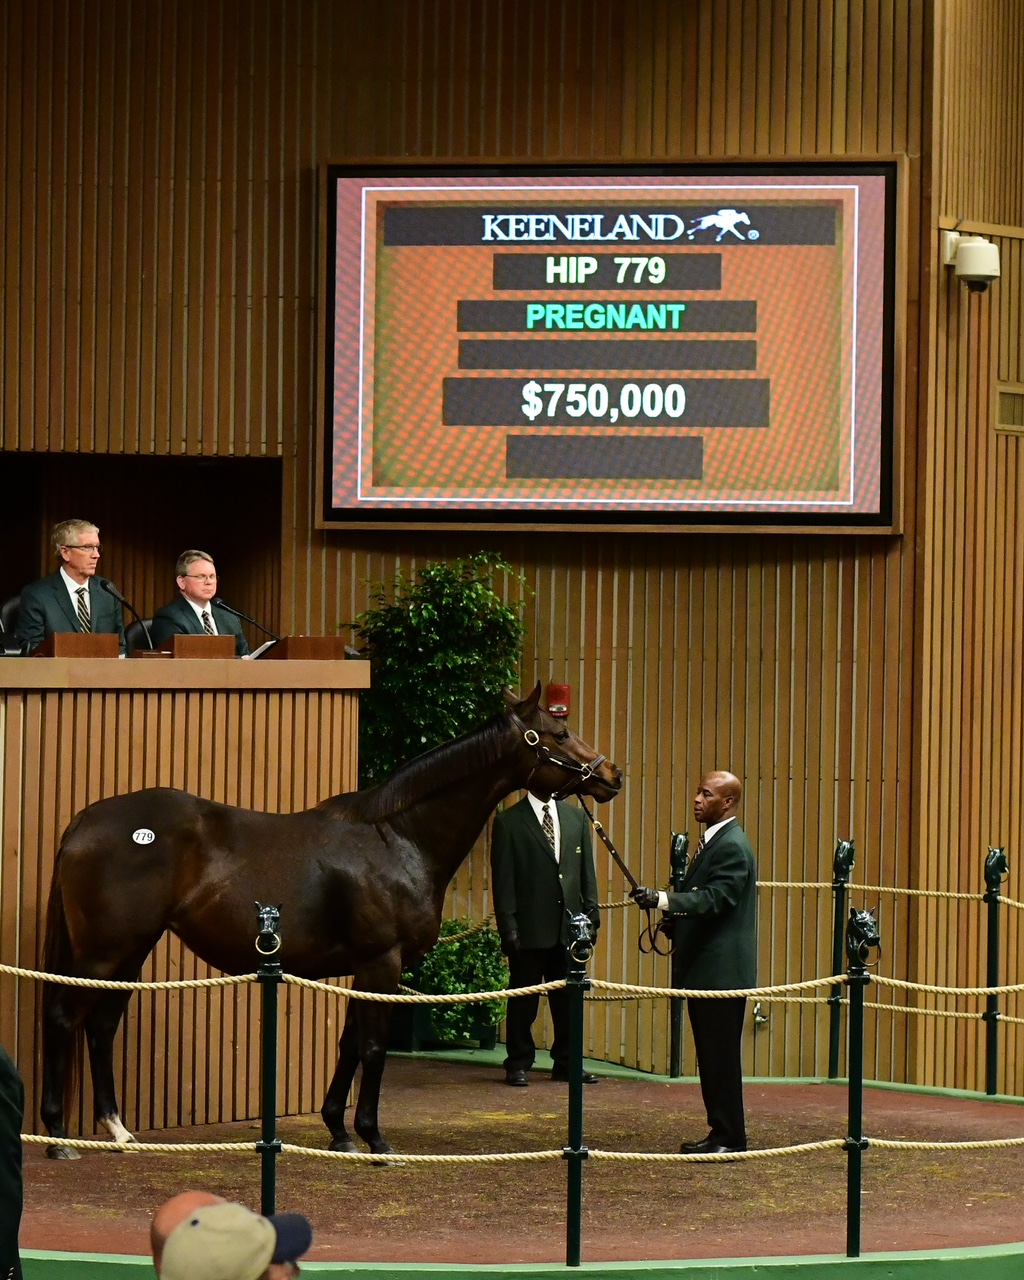 $750,000 Distorted Humor Mare Leads Vibrant Tuesday at Keeneland ...